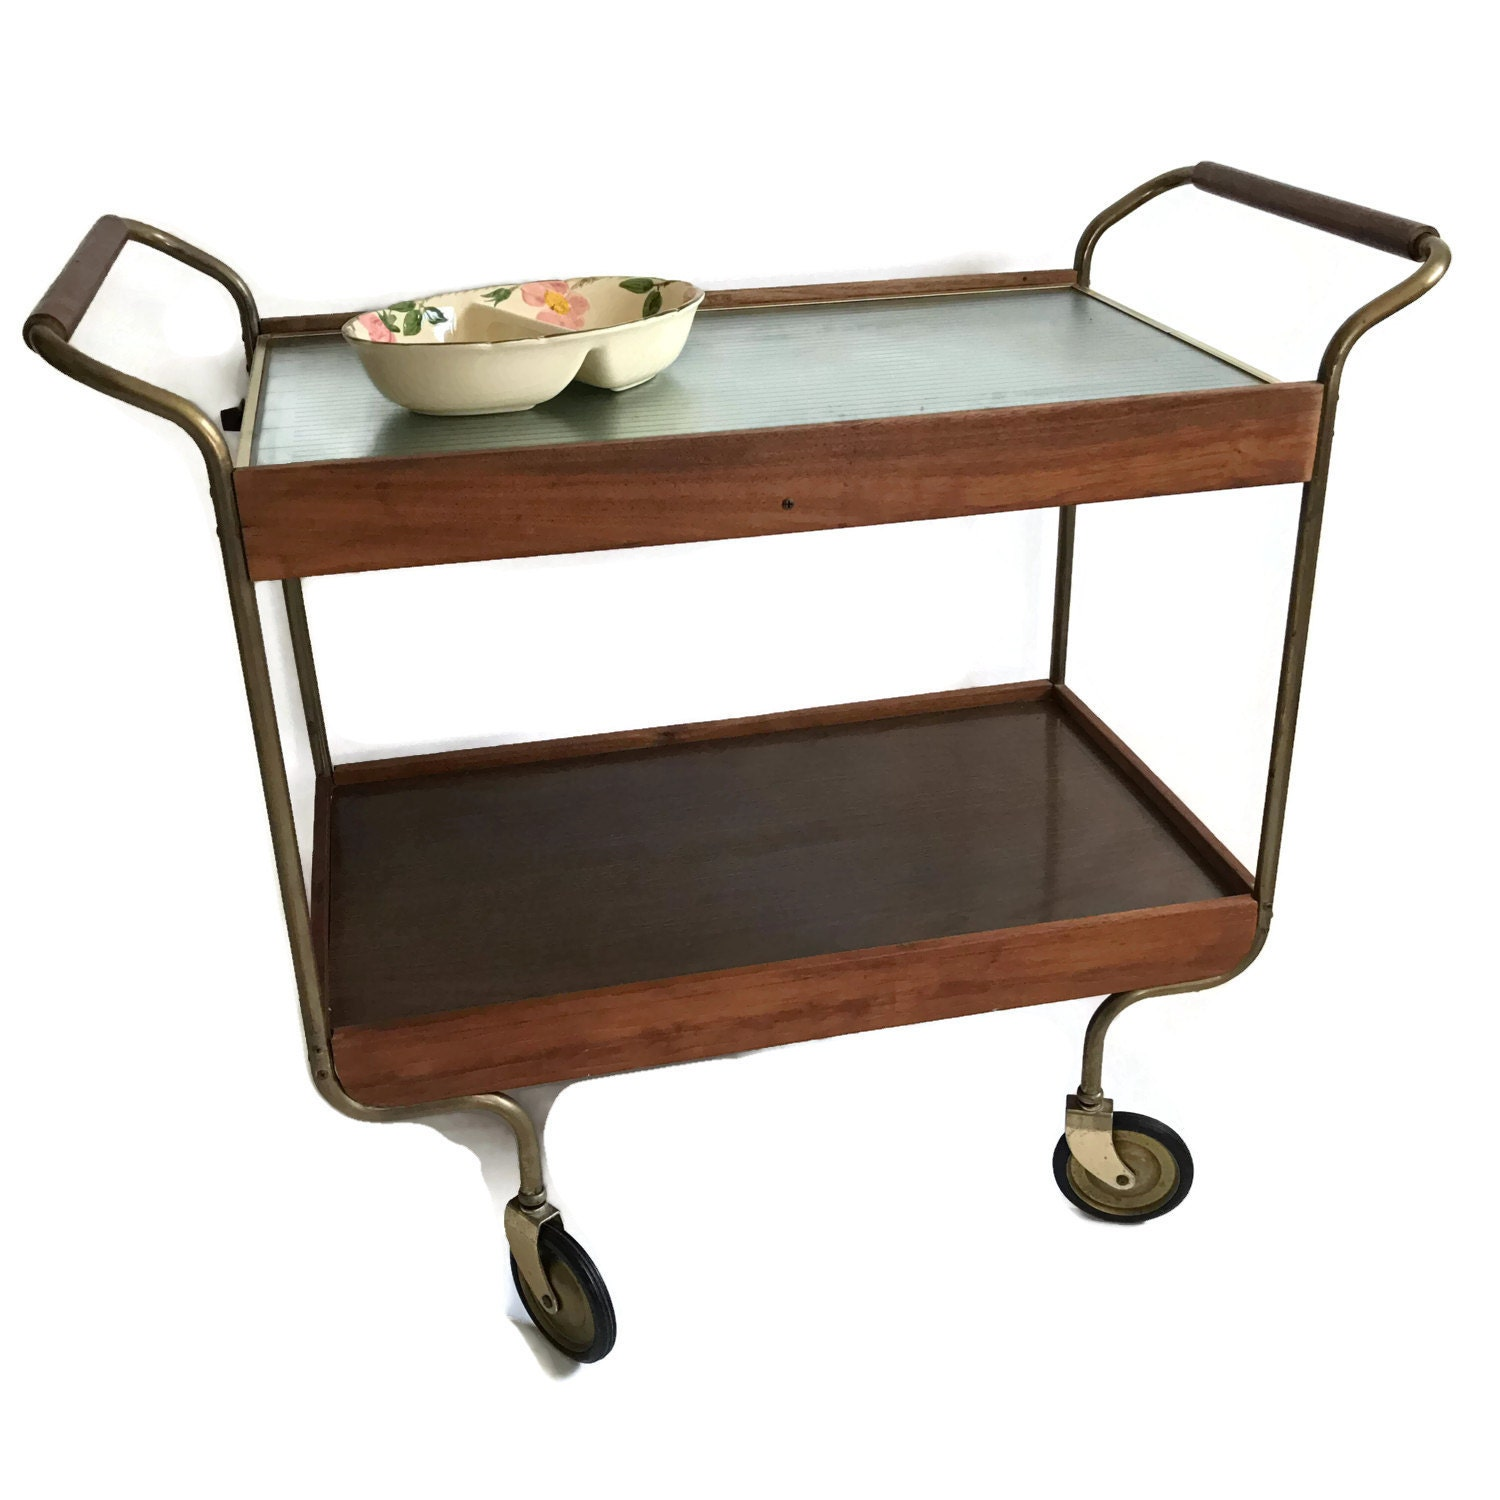 mid century bar cart with warming tray by merrilyverilyvintage. Black Bedroom Furniture Sets. Home Design Ideas